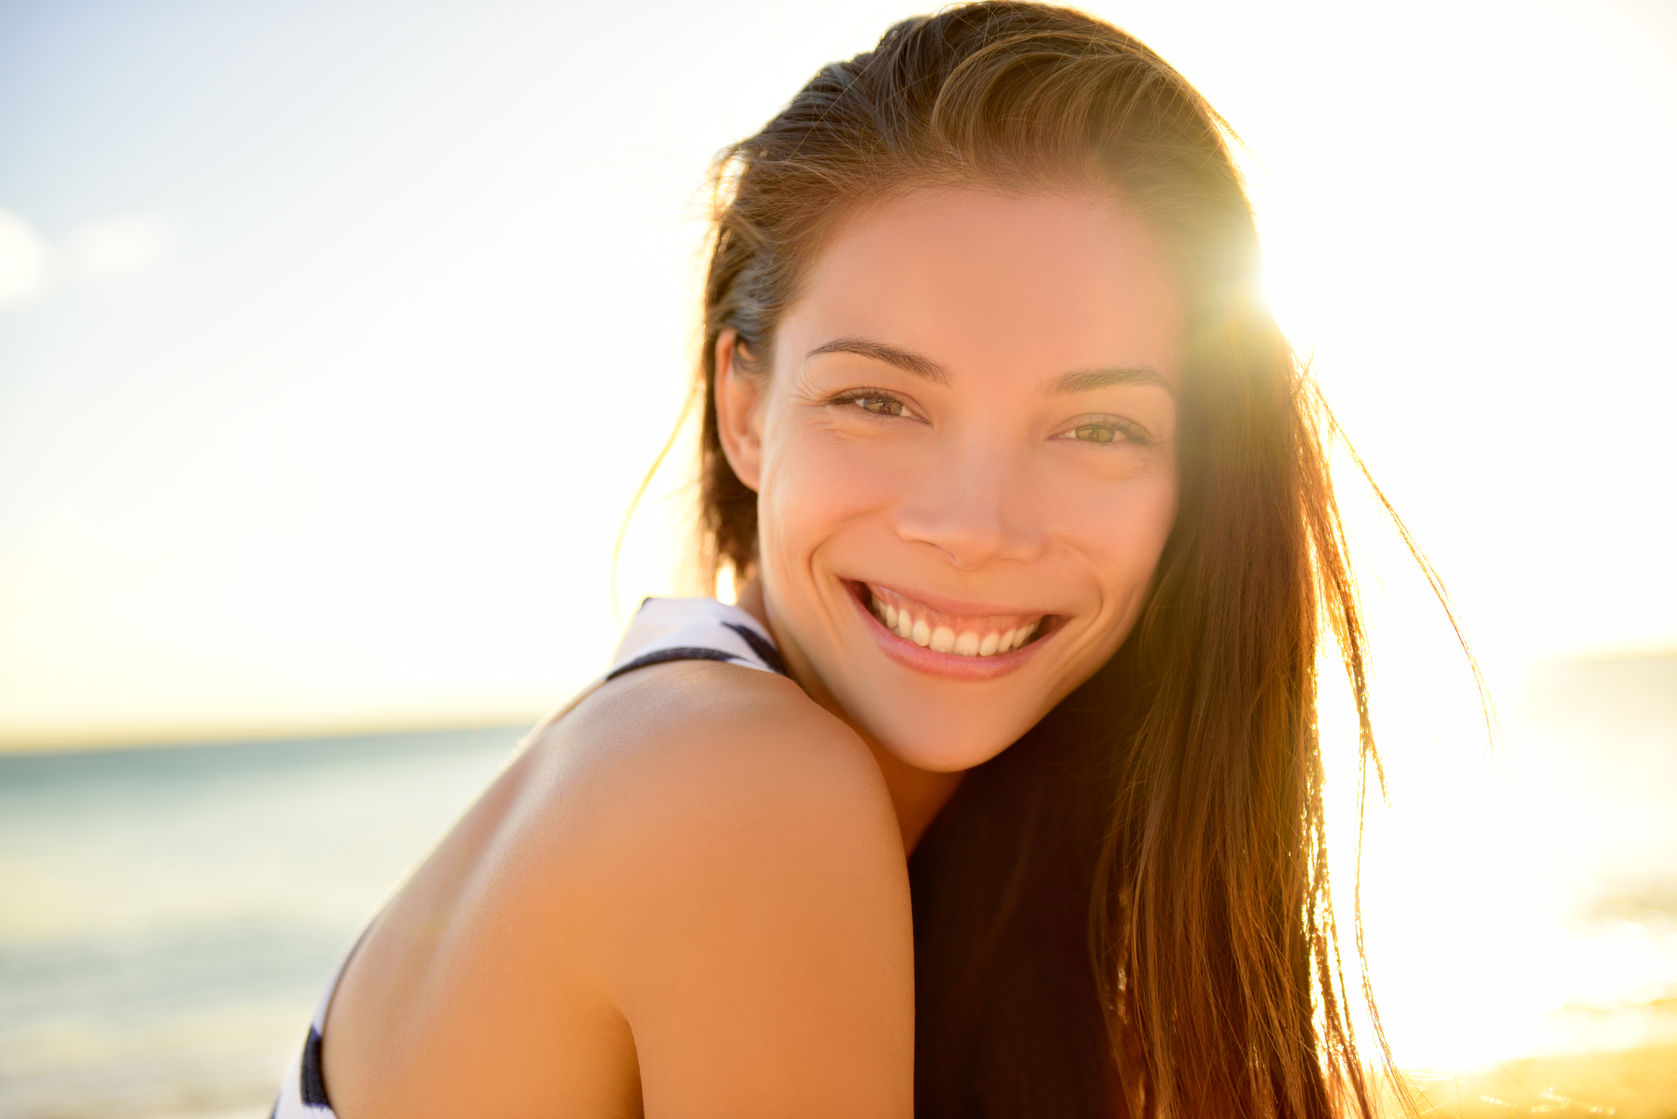 36753474 - asian beautiful girl smiling happy on beach vacation enjoying warm sunshine. mixed race asian caucasian pretty model outside with sun in background on hawaiian tropical beach.